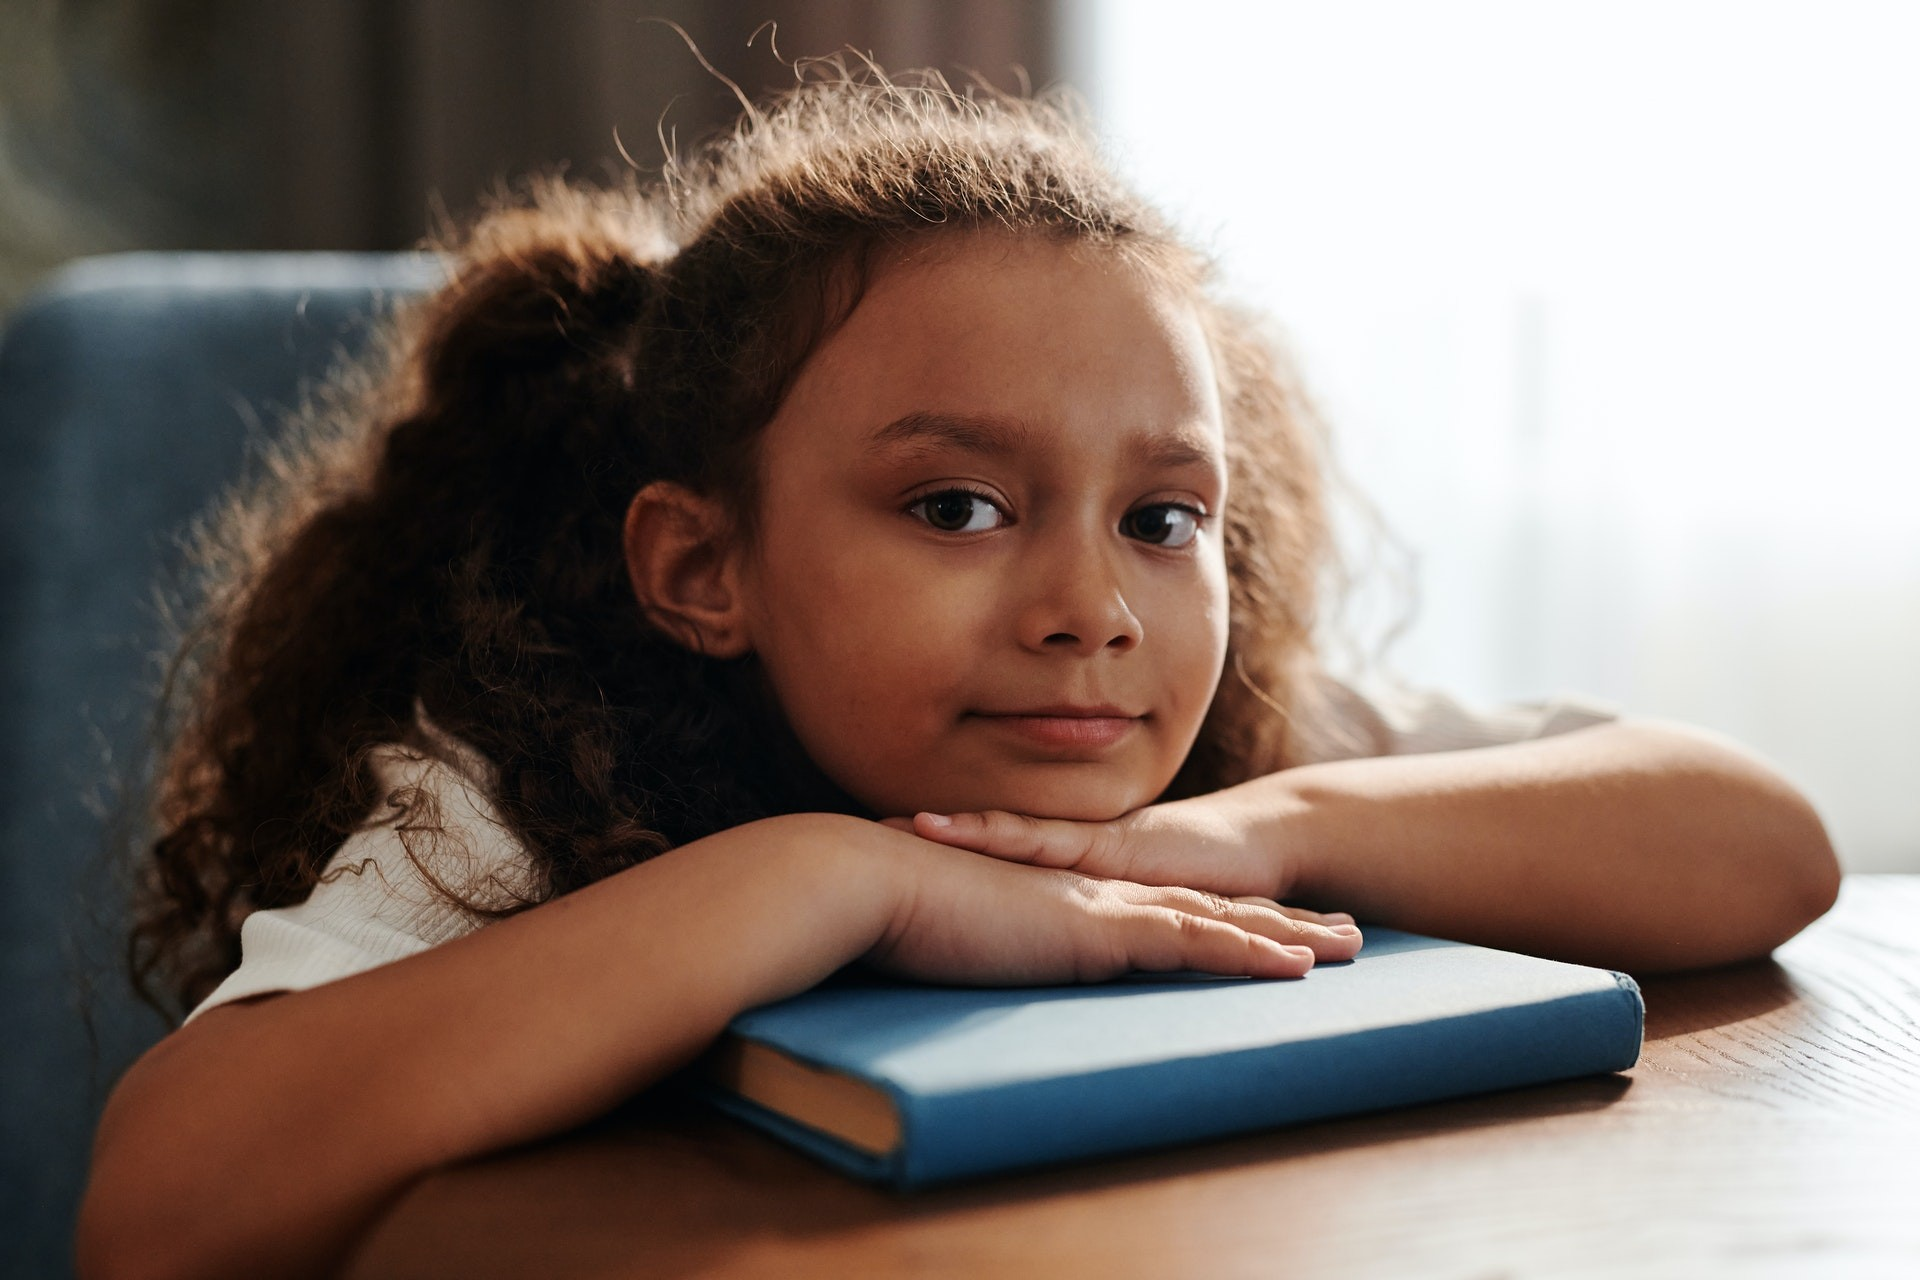 Young girl rests her head on a book and looks into the camera.